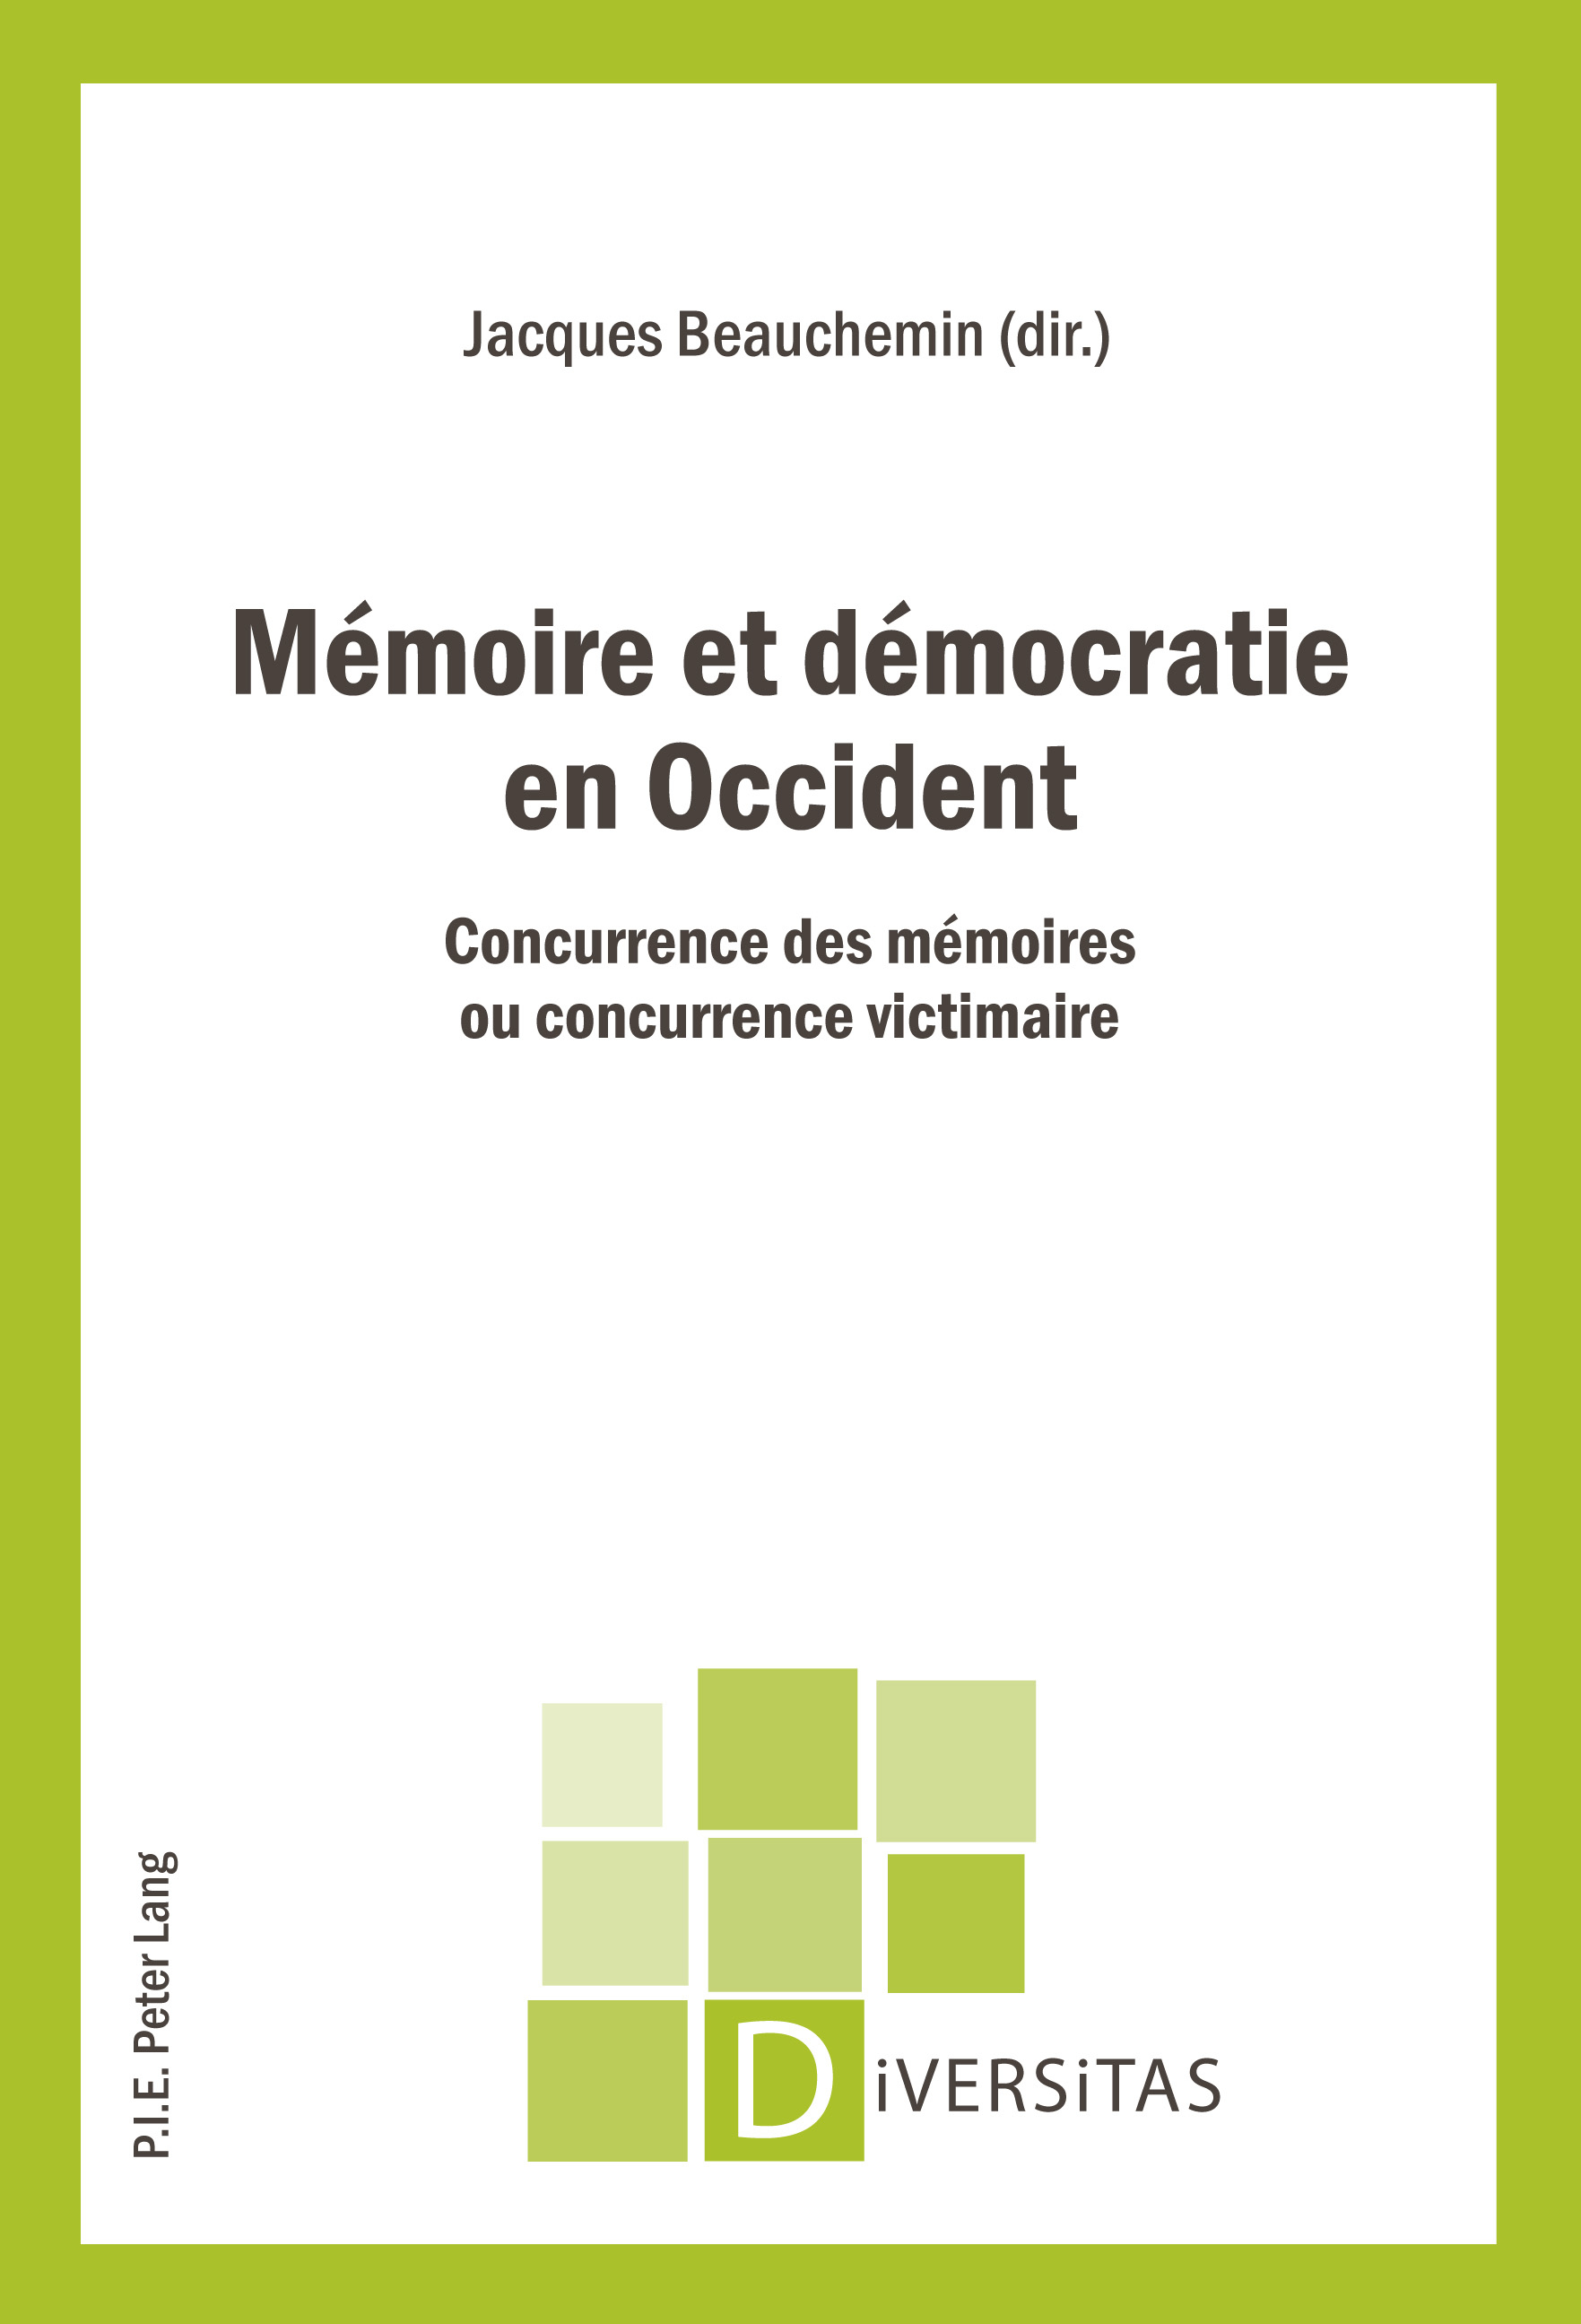 MEMOIRE ET DEMOCRATIE EN OCCIDENT